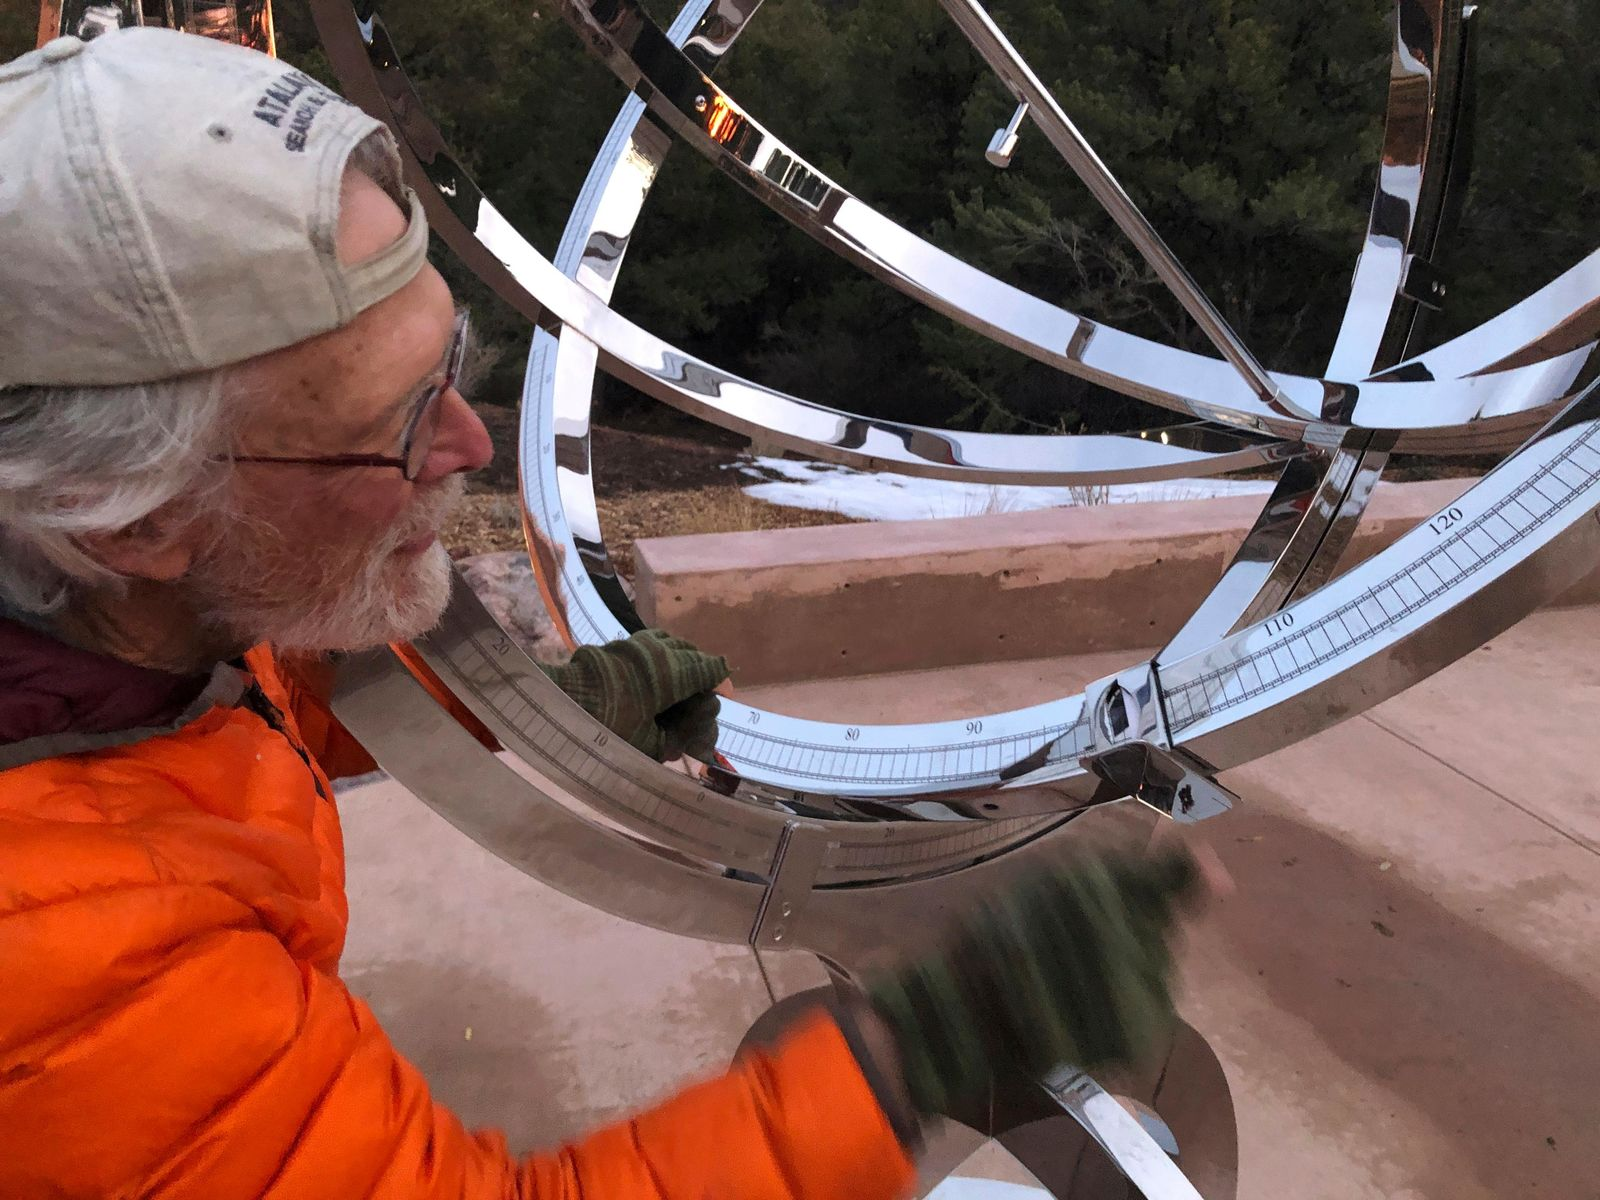 In this Dec. 11, 2019 photo Bill Donahue, a retired teacher and director of laboratories at St. John's College, adjusts the site on an armillary sphere to track planetary rotations and explore the history of astronomy in Santa Fe, N.M. The unique precision-steel replica of an instrument created by Danish astonomer Tycho Brahe was commissioned by graduates of the college where students trace the evolution of math and science from early civilizations. (AP Photo/Morgan Lee)